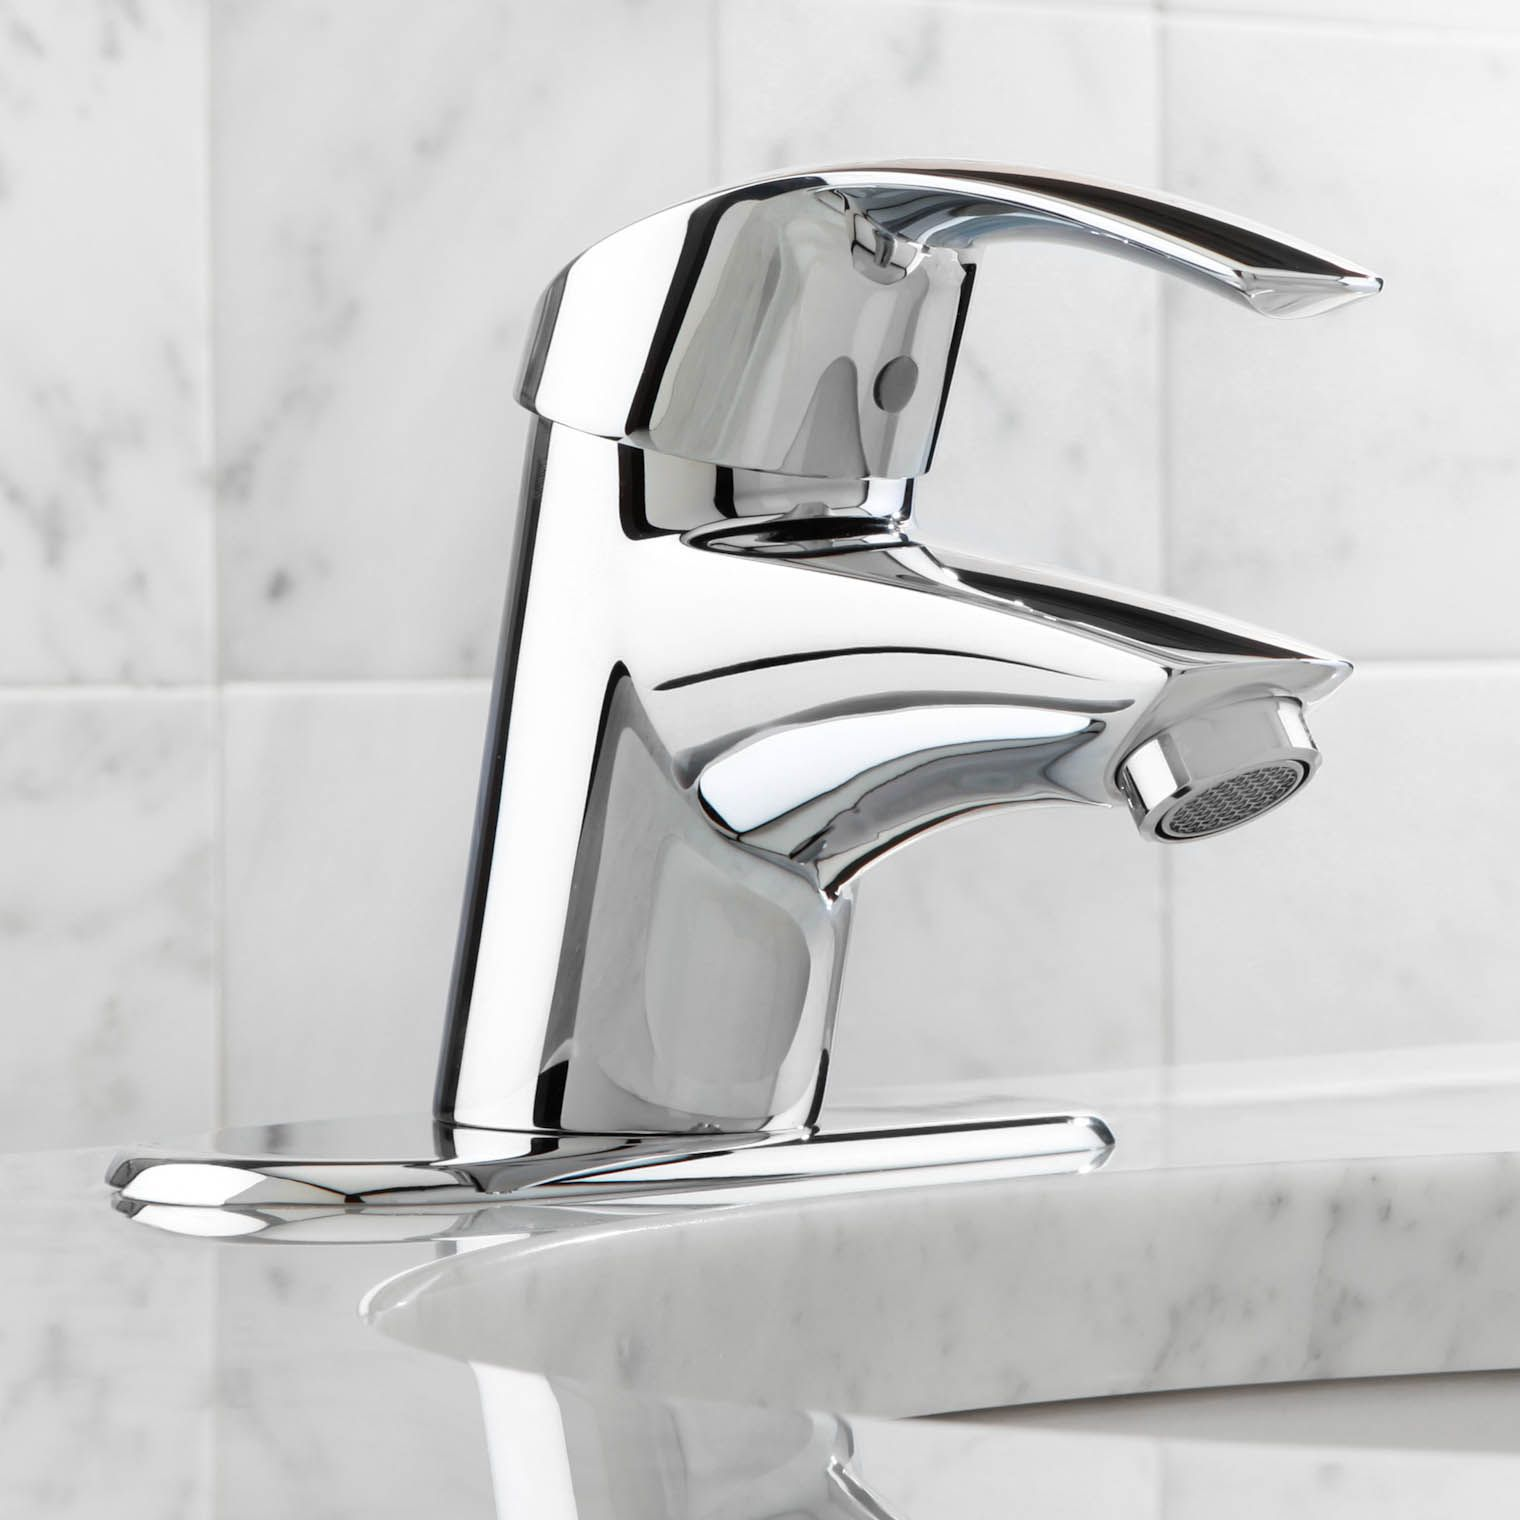 Faucets Grohe 32 709001 | Bathrooms | Pinterest | Faucet, Single ...